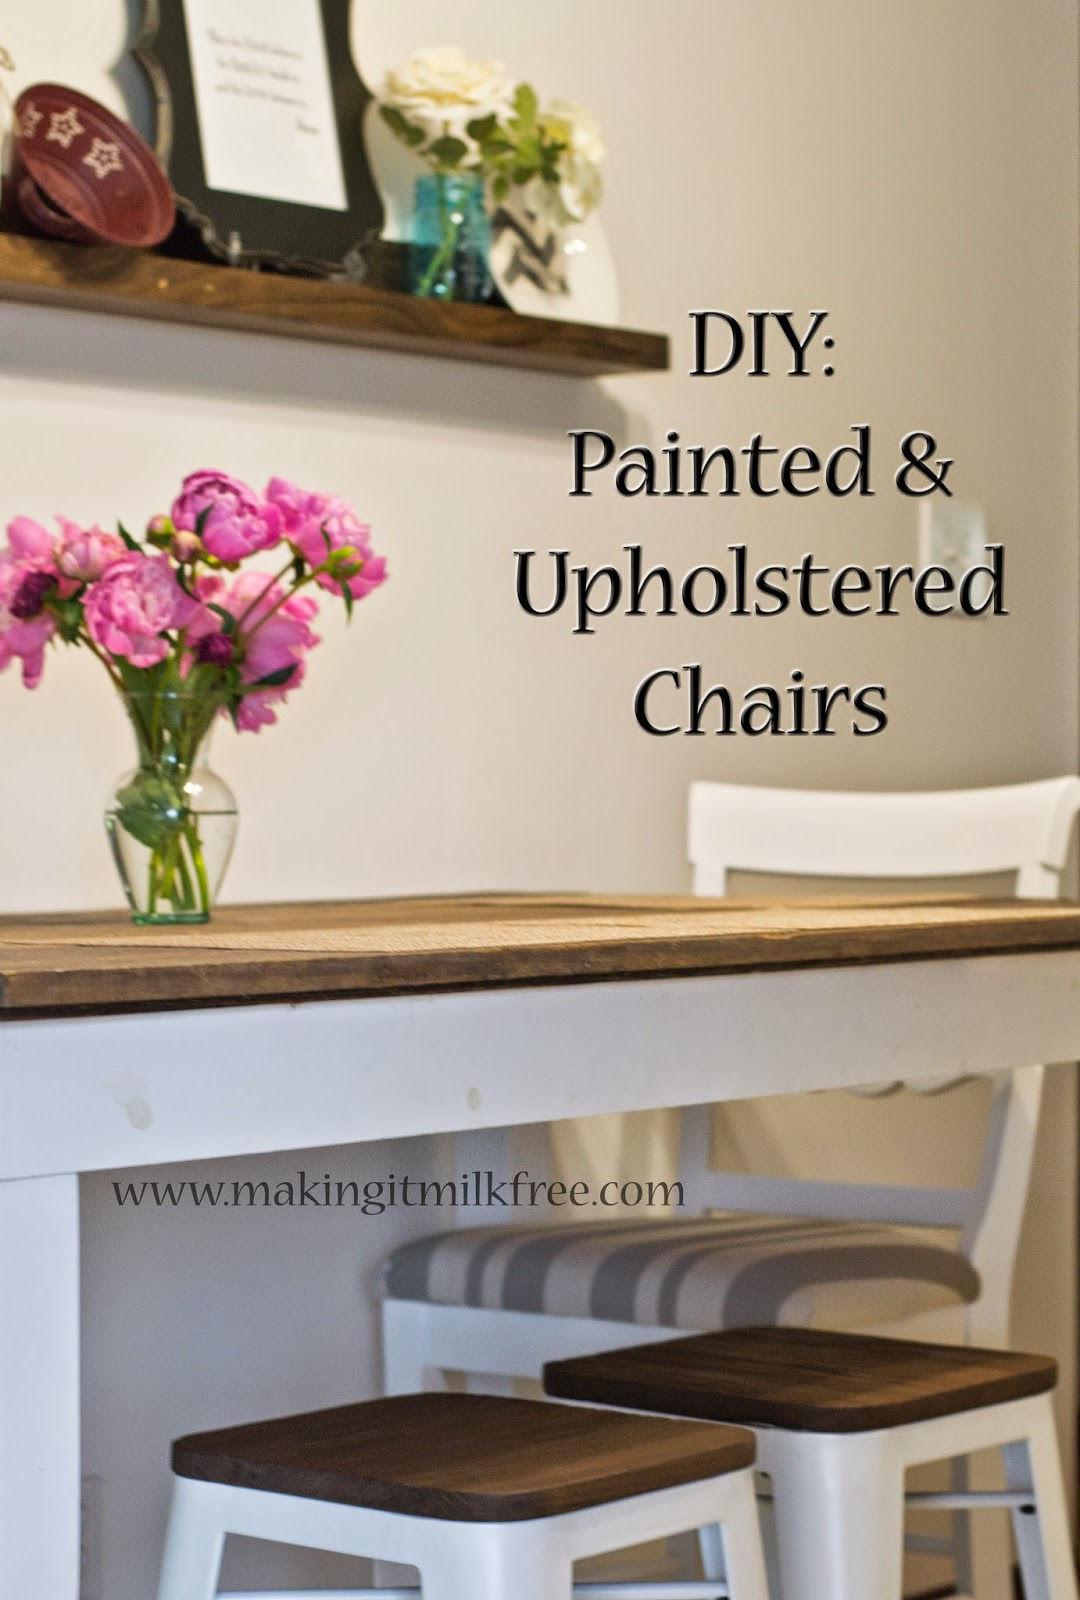 Diy Painted Windsor Chairs Desk Swivel Chair Making It Milk Free 43 Upholstered